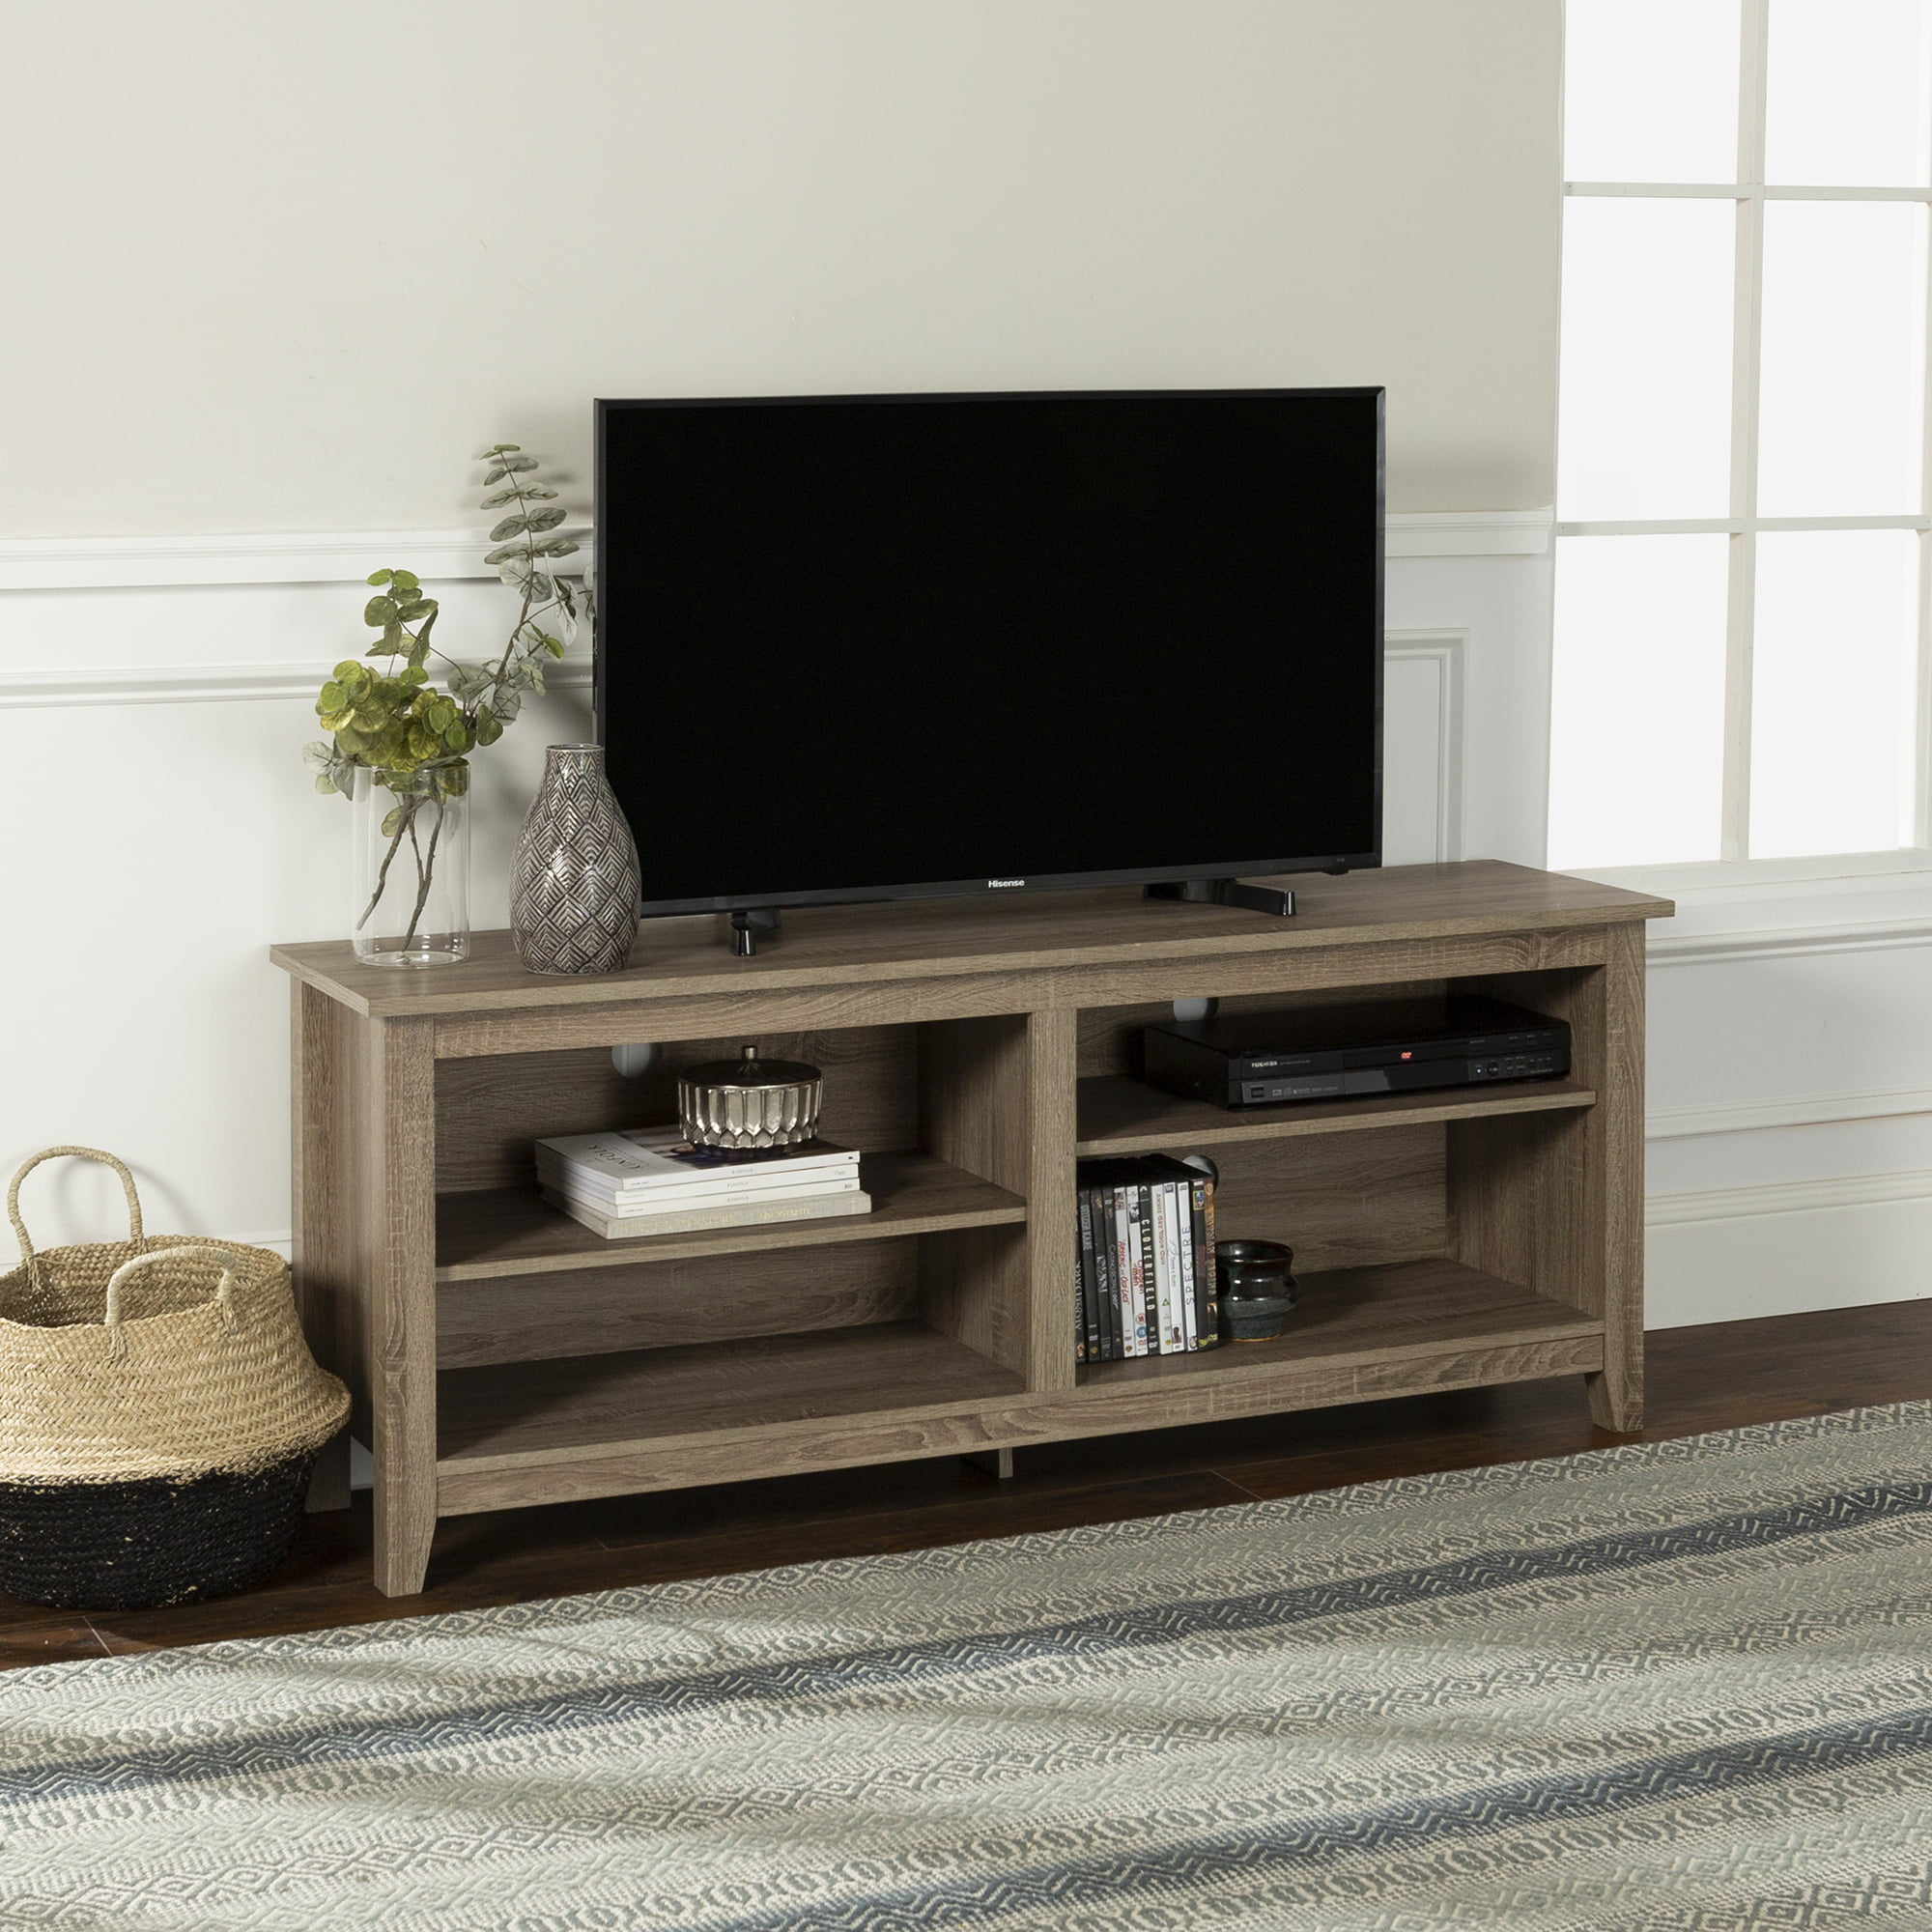 Walker Edison Wood Tv Media Storage Stand For Tv S Up To 64 Driftwood Walmart Com Walmart Com